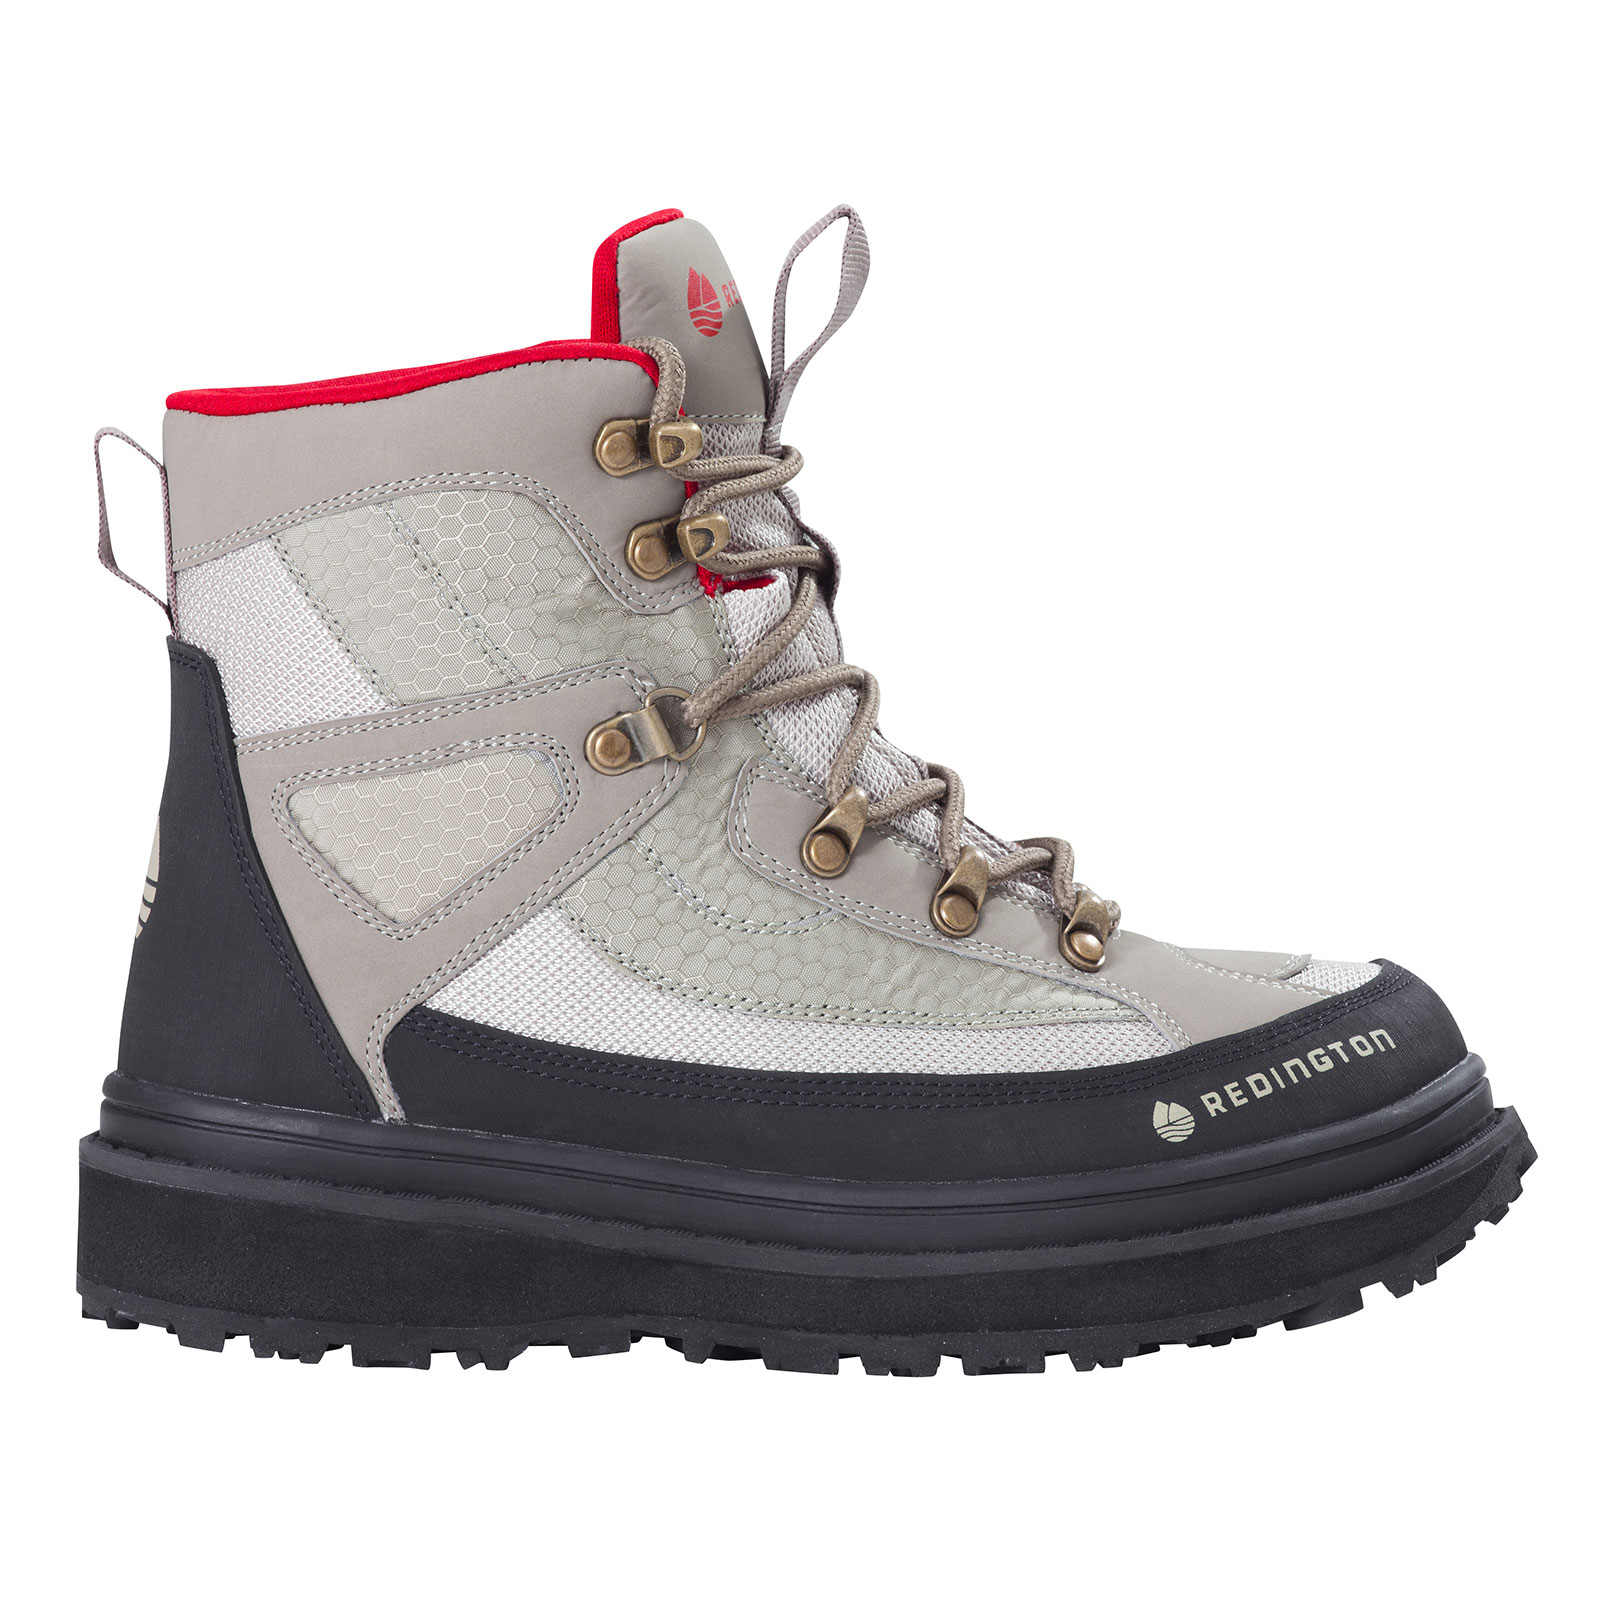 Redington Womens Willow River Fly Fishing Wading Boots-Sticky Rubber All Sizes by